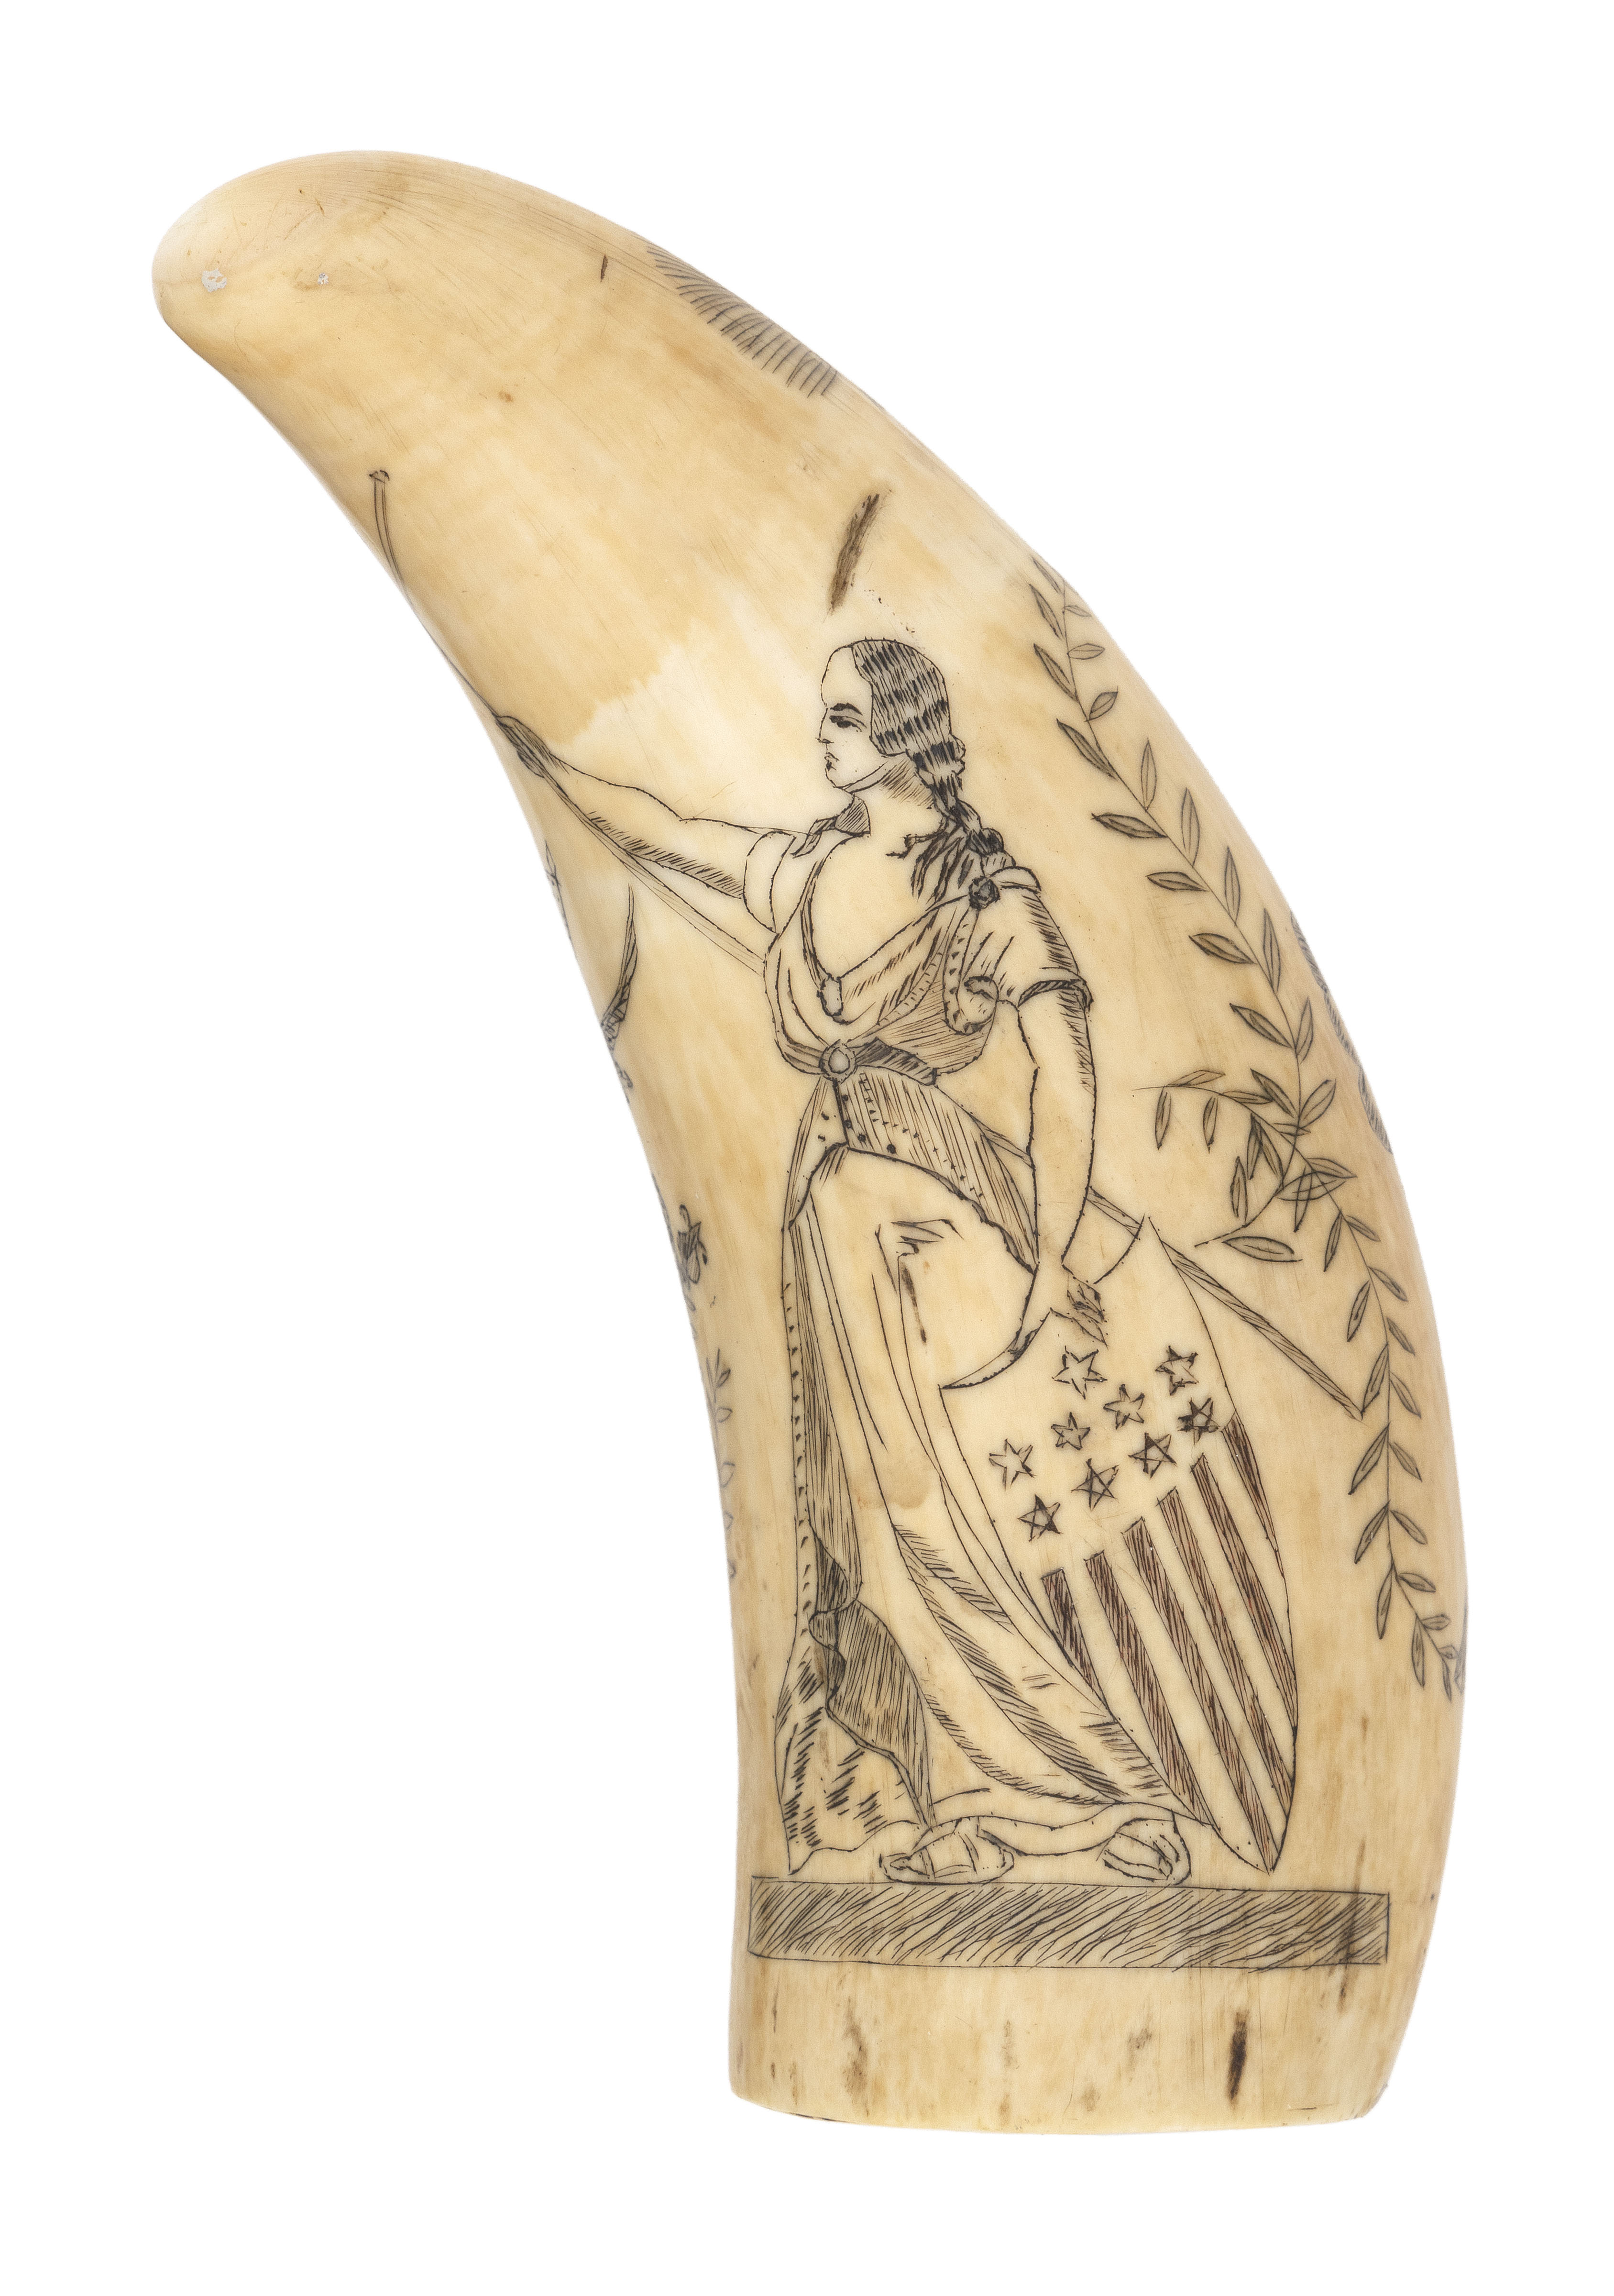 POLYCHROME SCRIMSHAW WHALE'S TOOTH DEPICTING LADY LIBERTY AND LADY JUSTICE Mid-19th Century Length 4.5